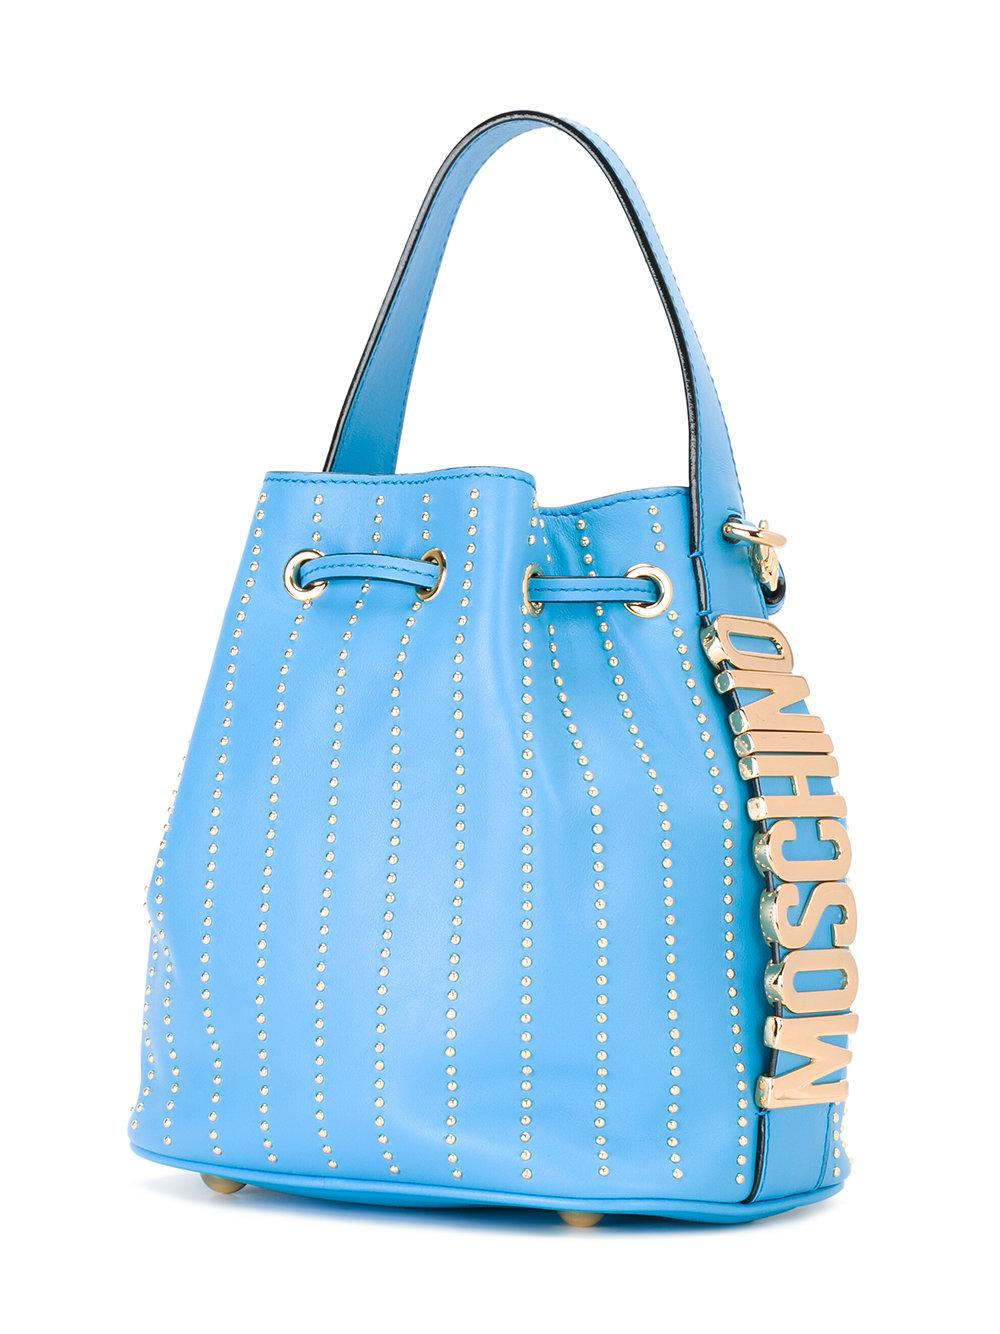 Moschino Leather Bucket Tote in Blue